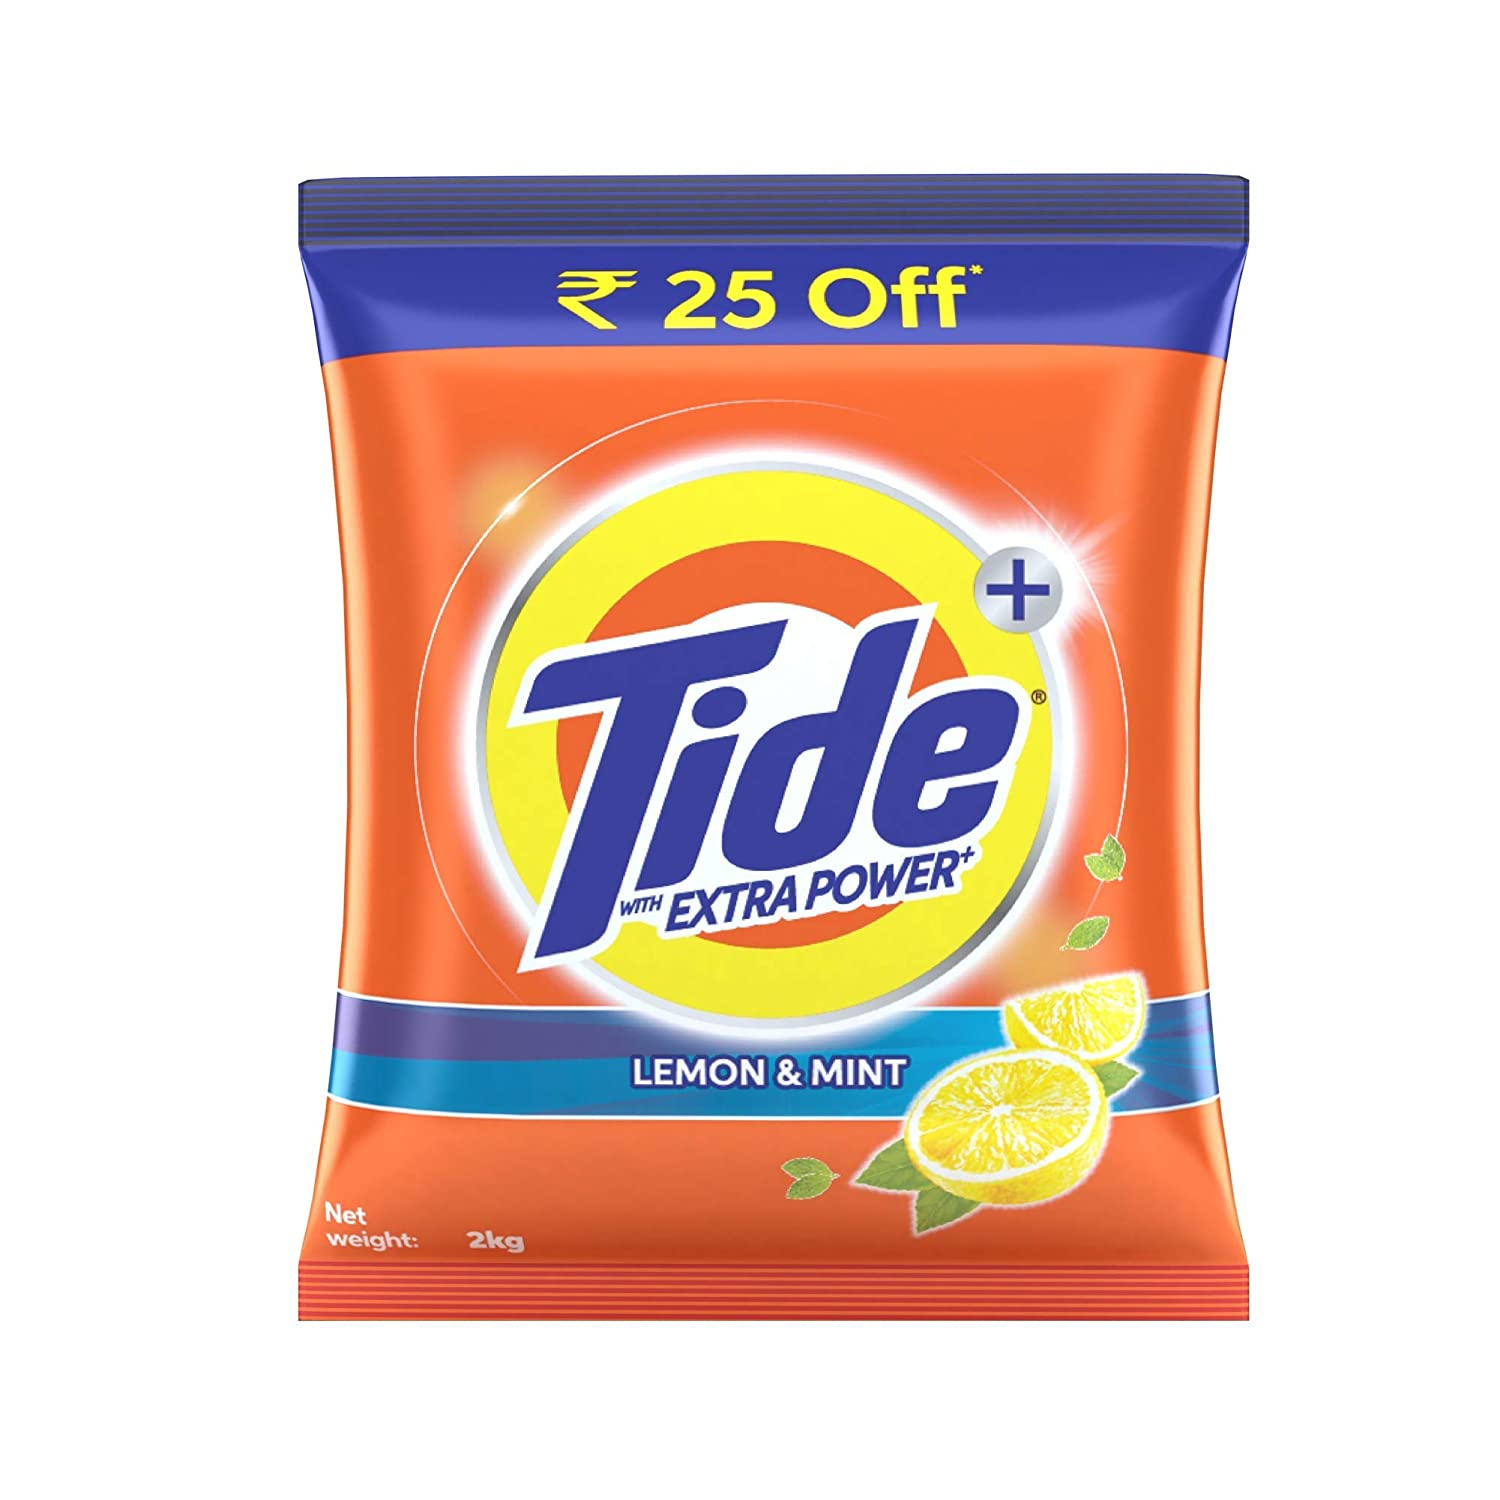 Tide Plus Extra Power Detergent Powder, 2kg